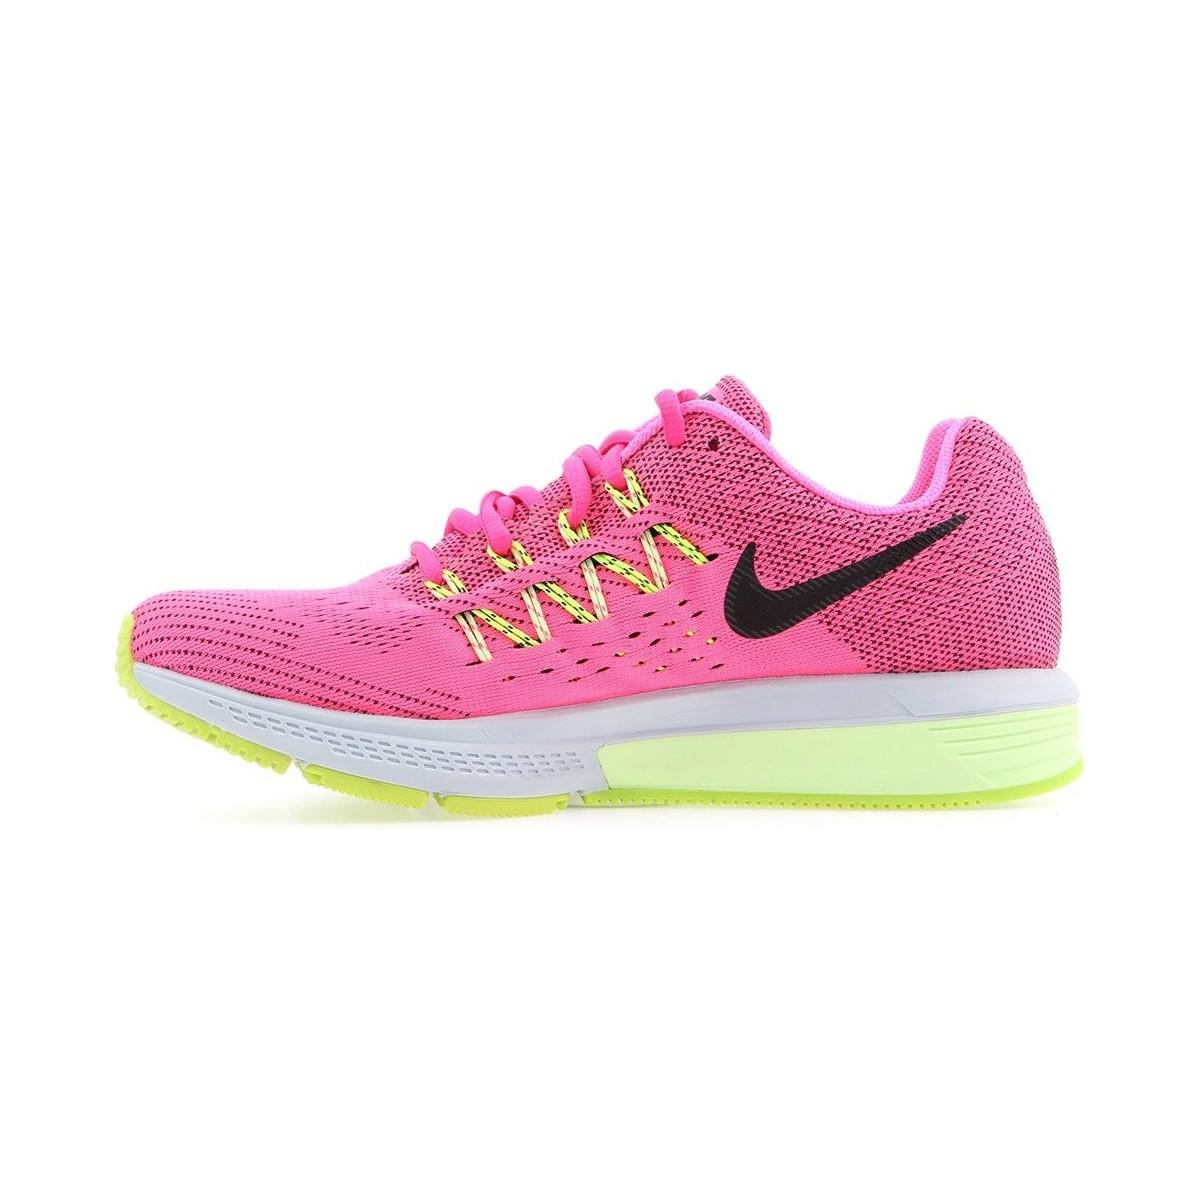 3c23c6acaa6c6 Nike Wmns Air Zoom Vomero 10 Women s Shoes (trainers) In Pink in ...